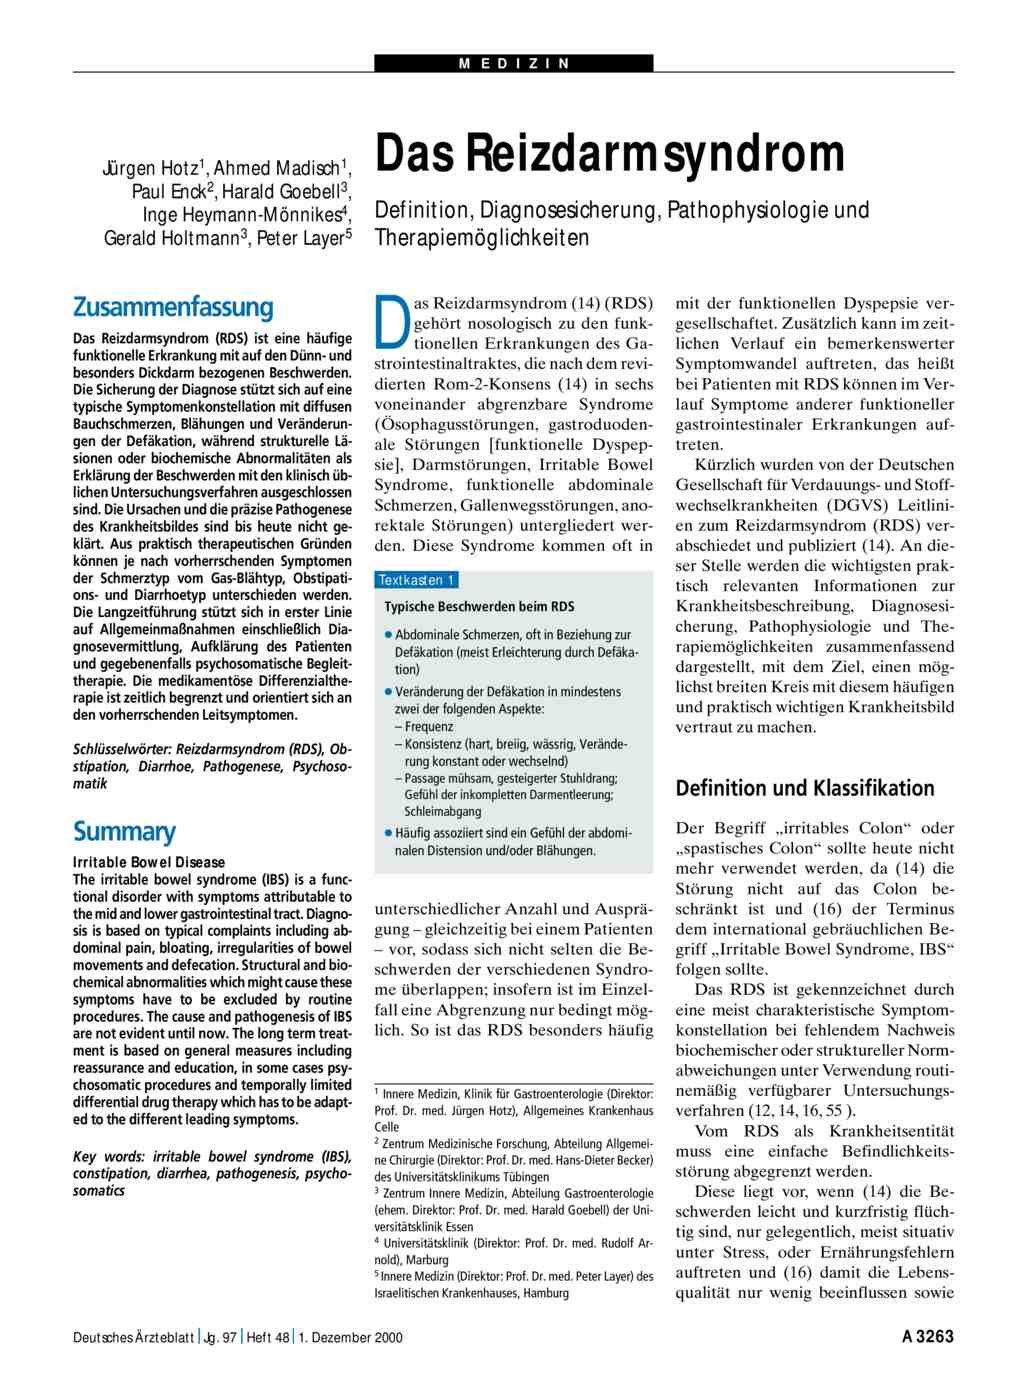 Das Reizdarmsyndrom Definition Diagnosesicherung Pathophysiologie